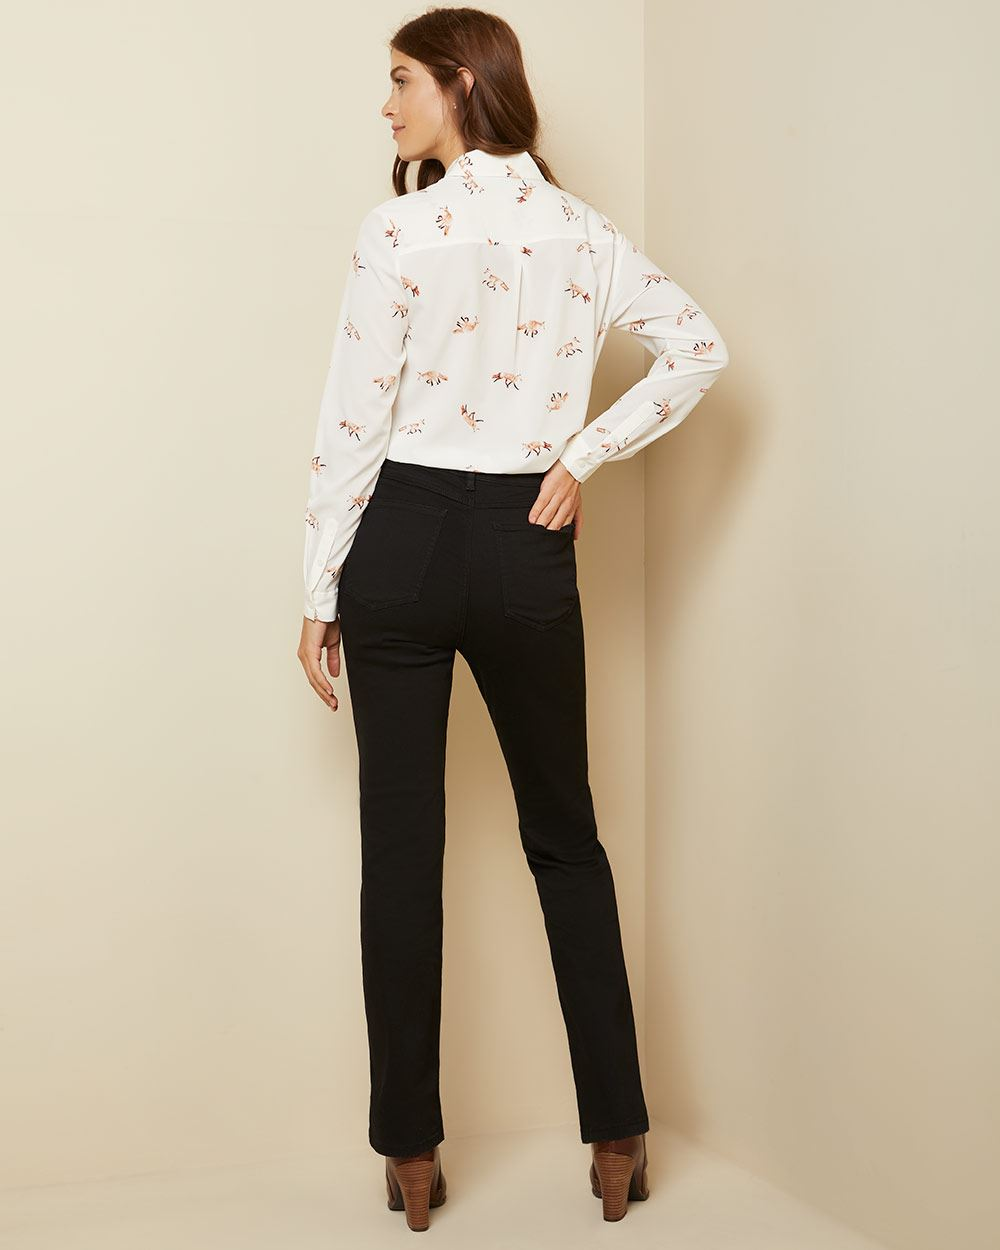 High-waisted semi-flare leg jeans in black denim - 32''